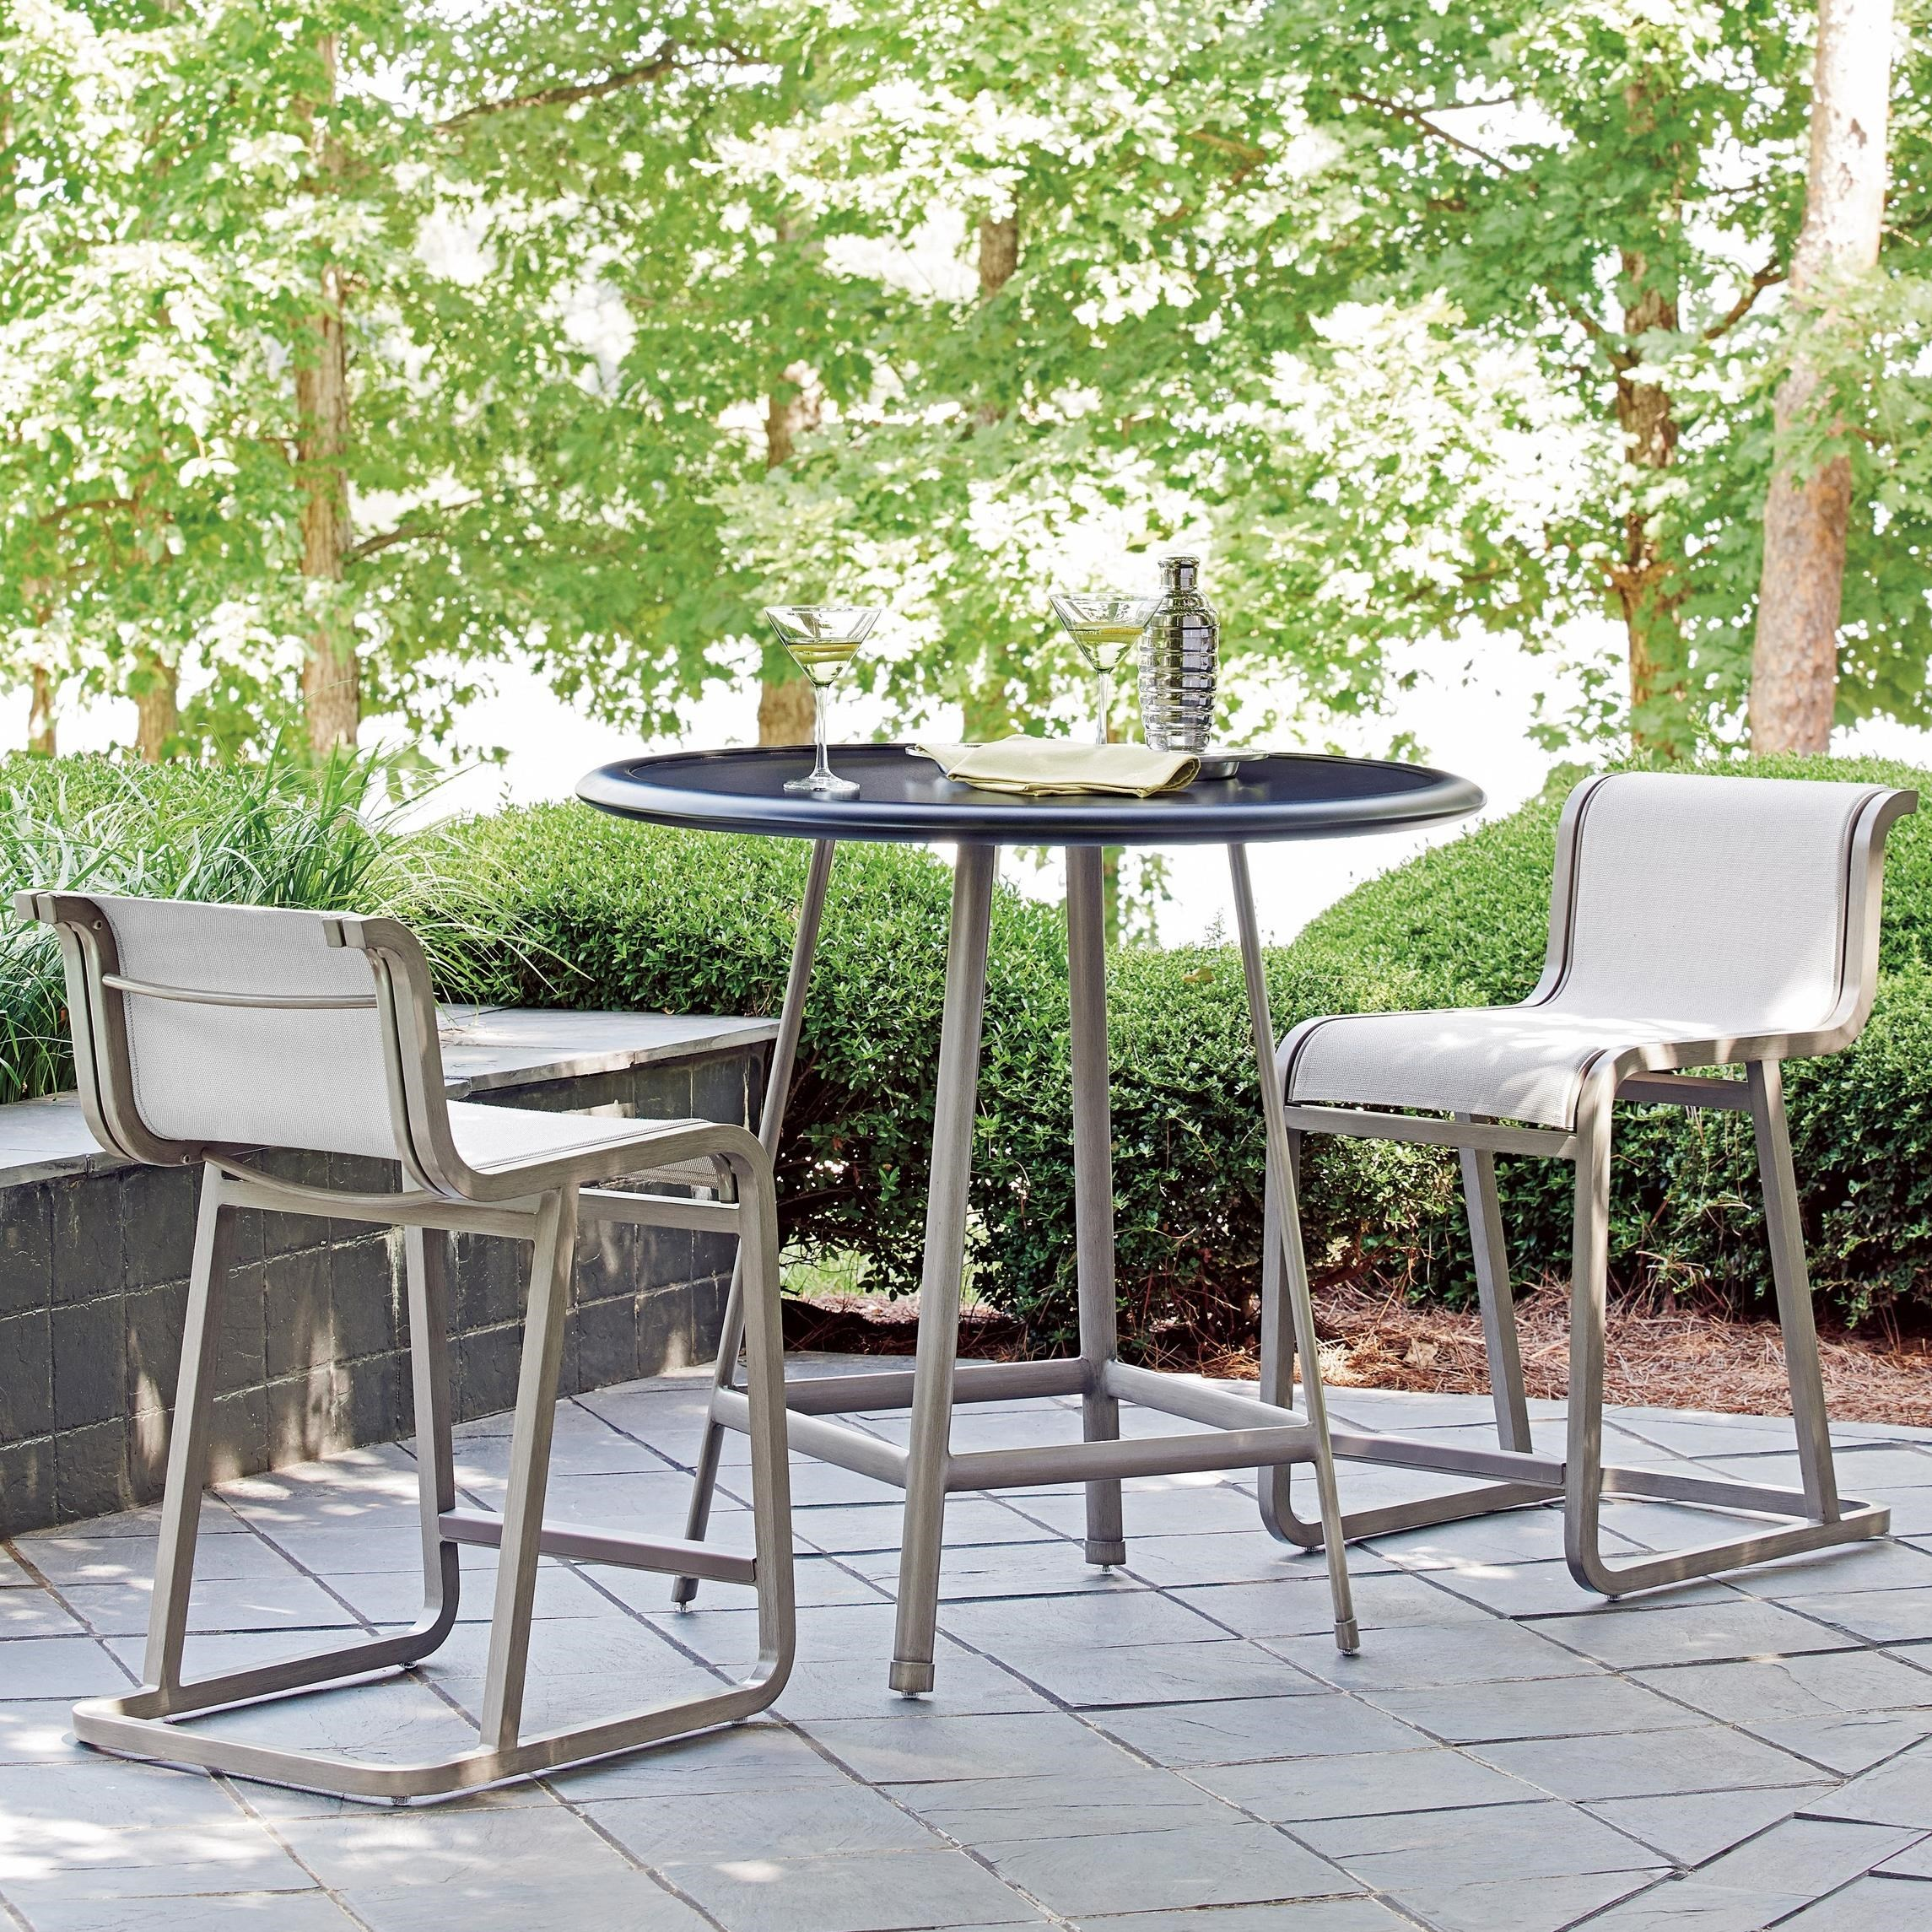 Outdoor Bistro Set - Counter Height